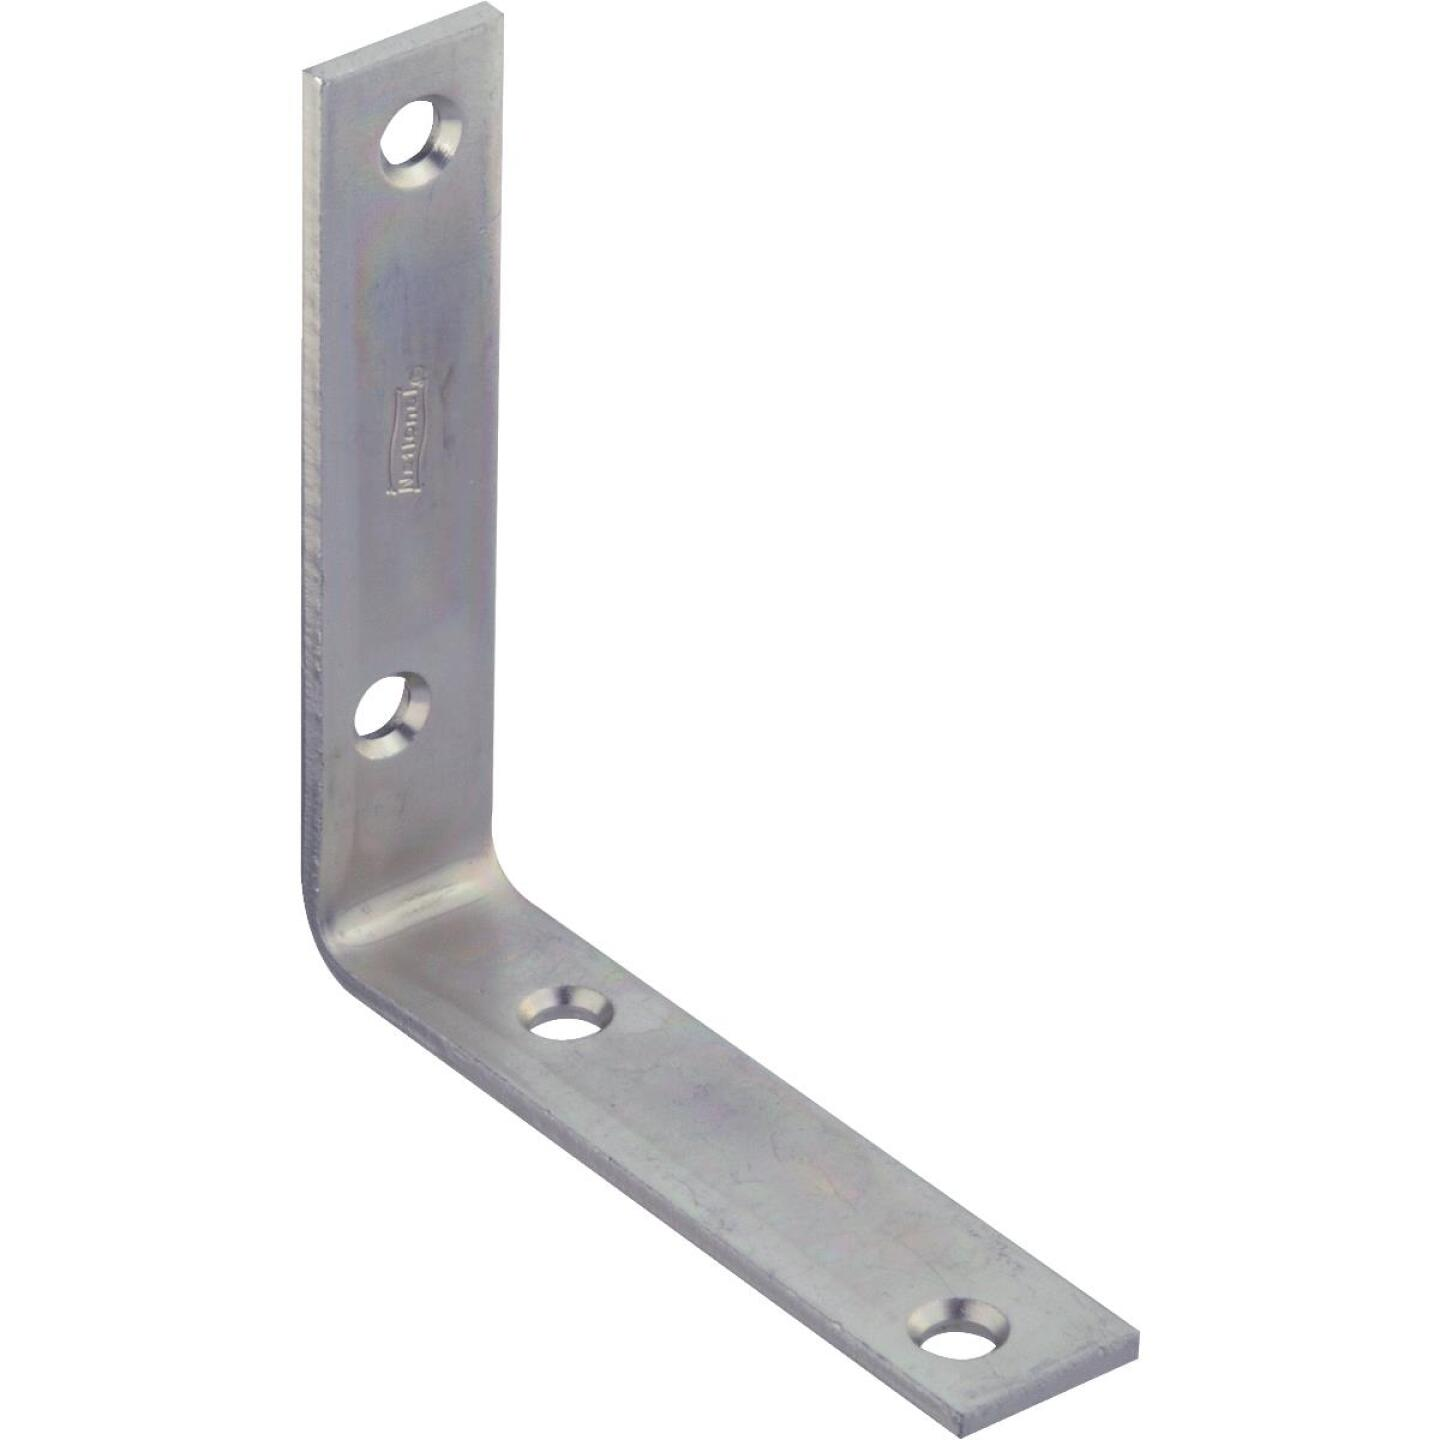 National Catalog 115 4 In. x 7/8 In. Zinc Corner Brace Image 1